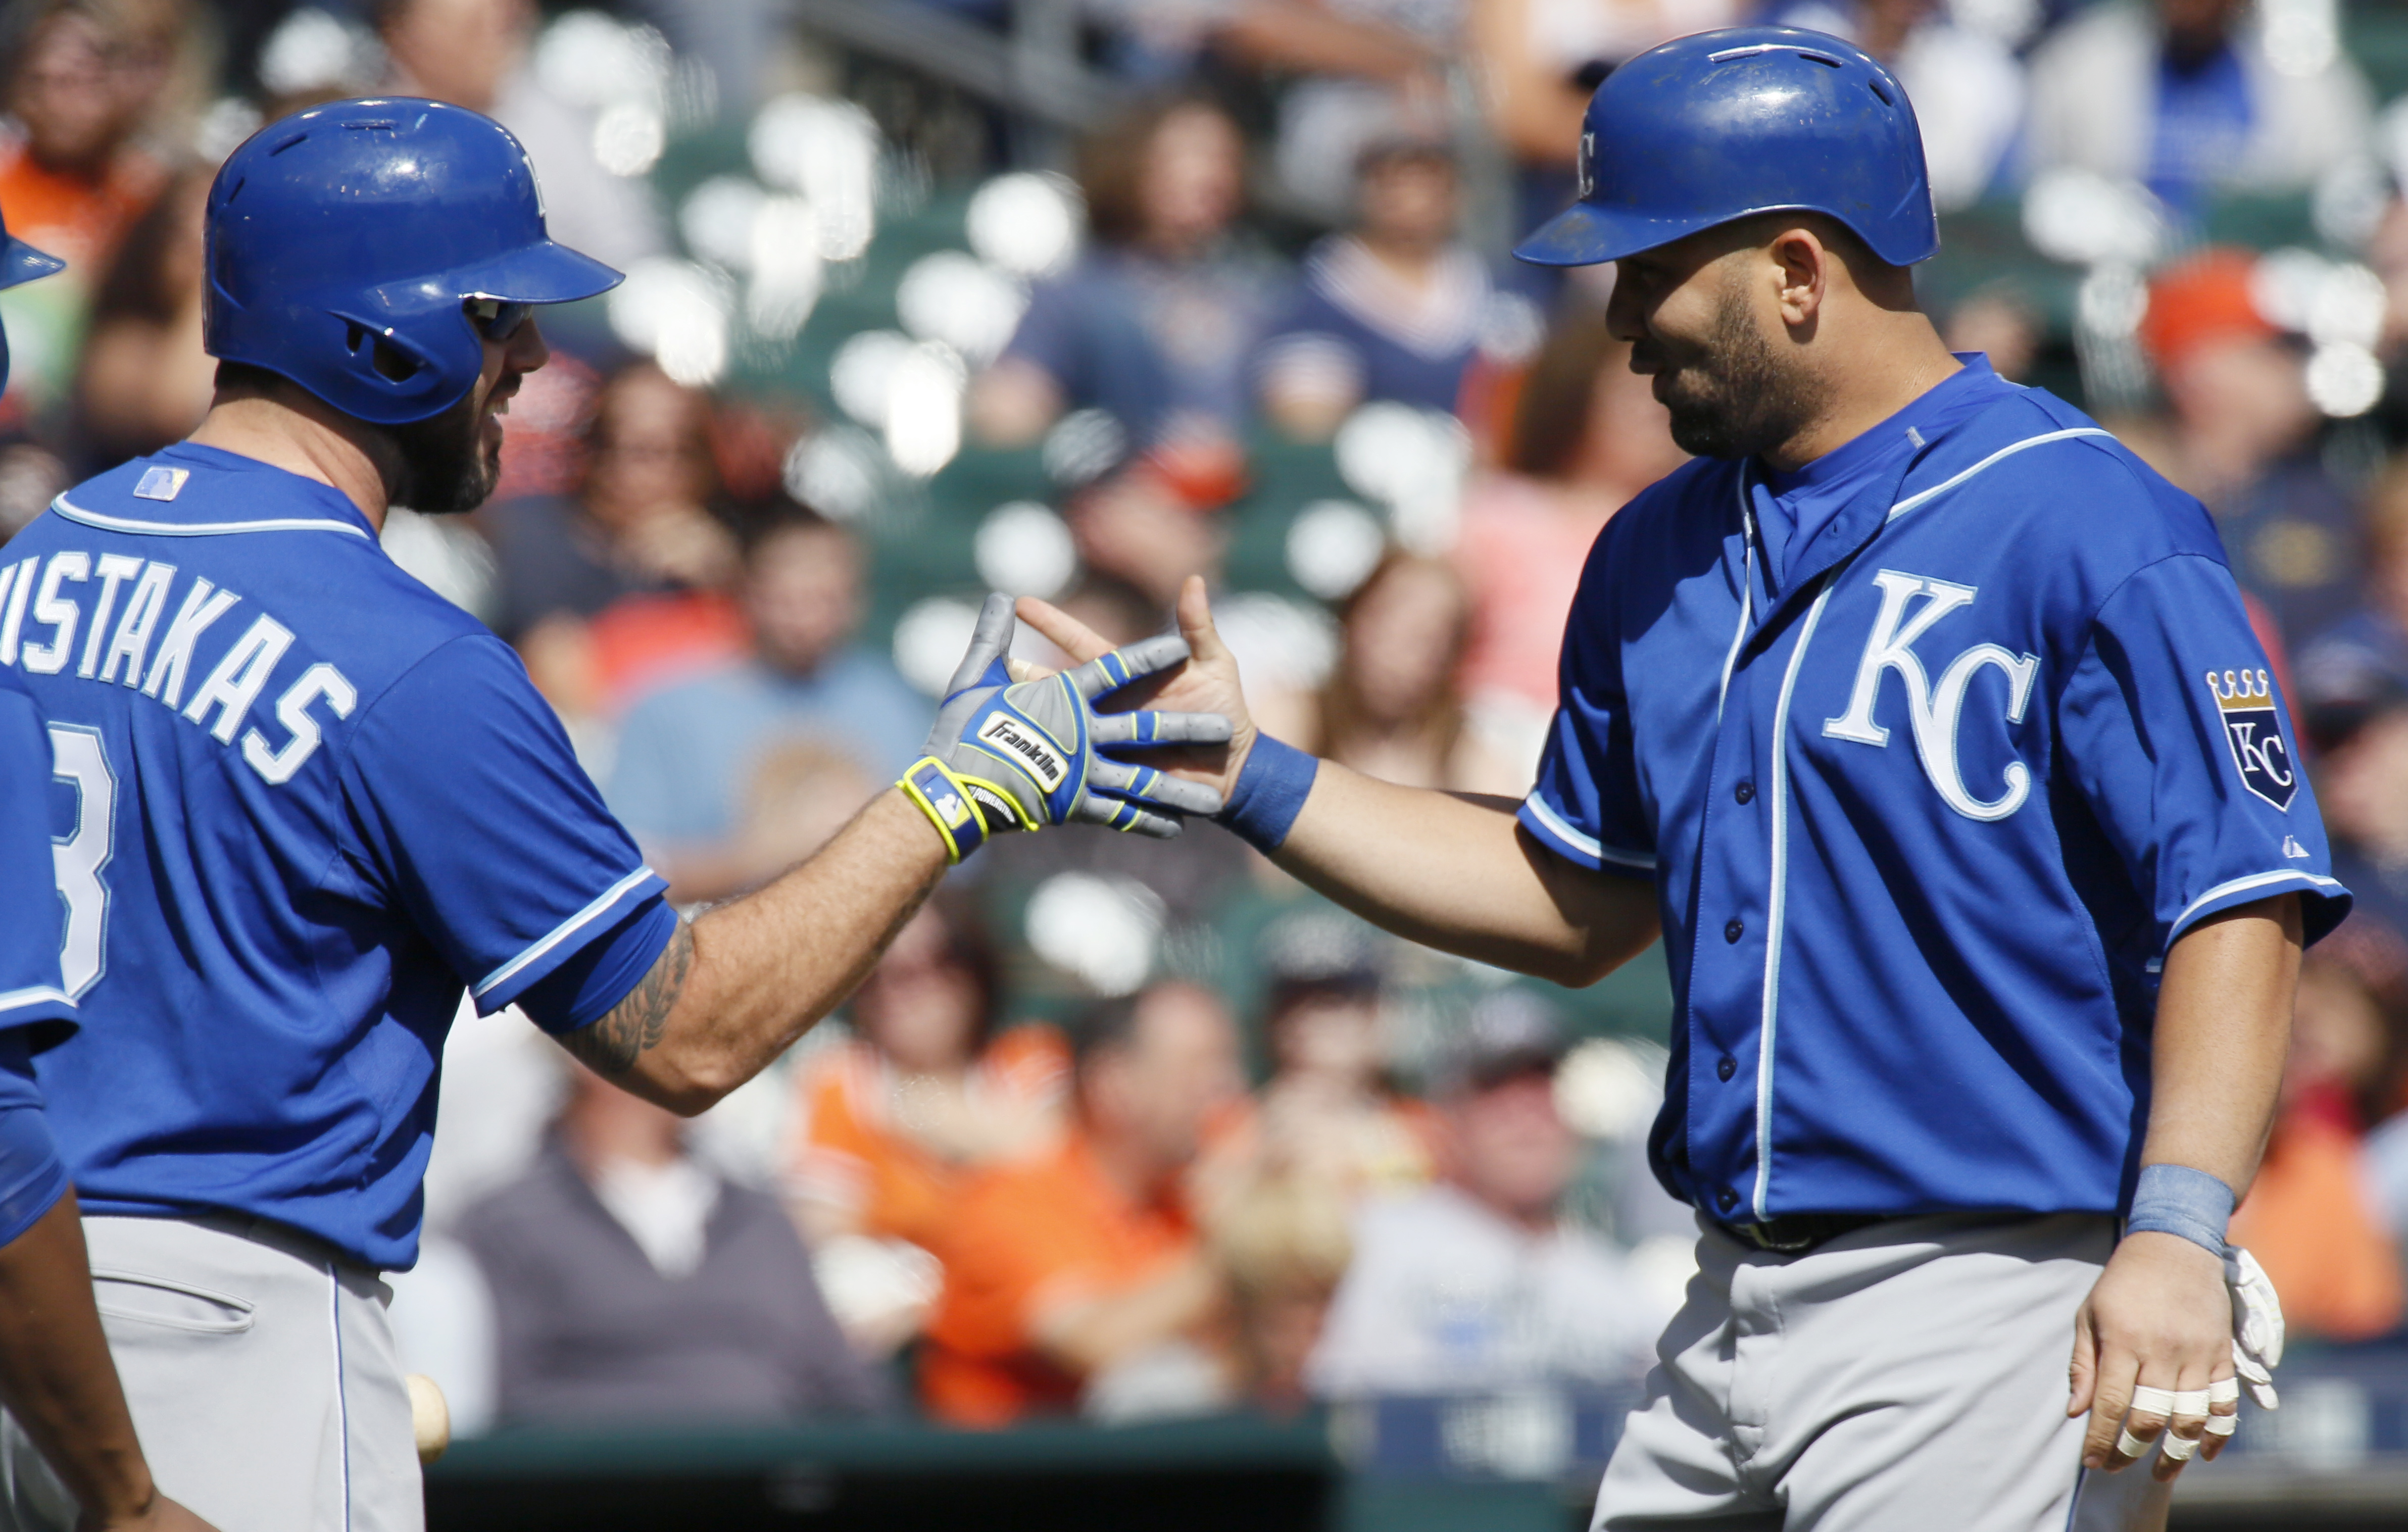 Kansas City Royals' Kendrys Morales, right, is congratulated by Mike Moustakas (8) after hitting a solo home run against the Detroit Tigers during the fourth inning of a baseball game at Comerica Park, Sunday, Sept. 20, 2015, in Detroit. (AP Photo/Duane B